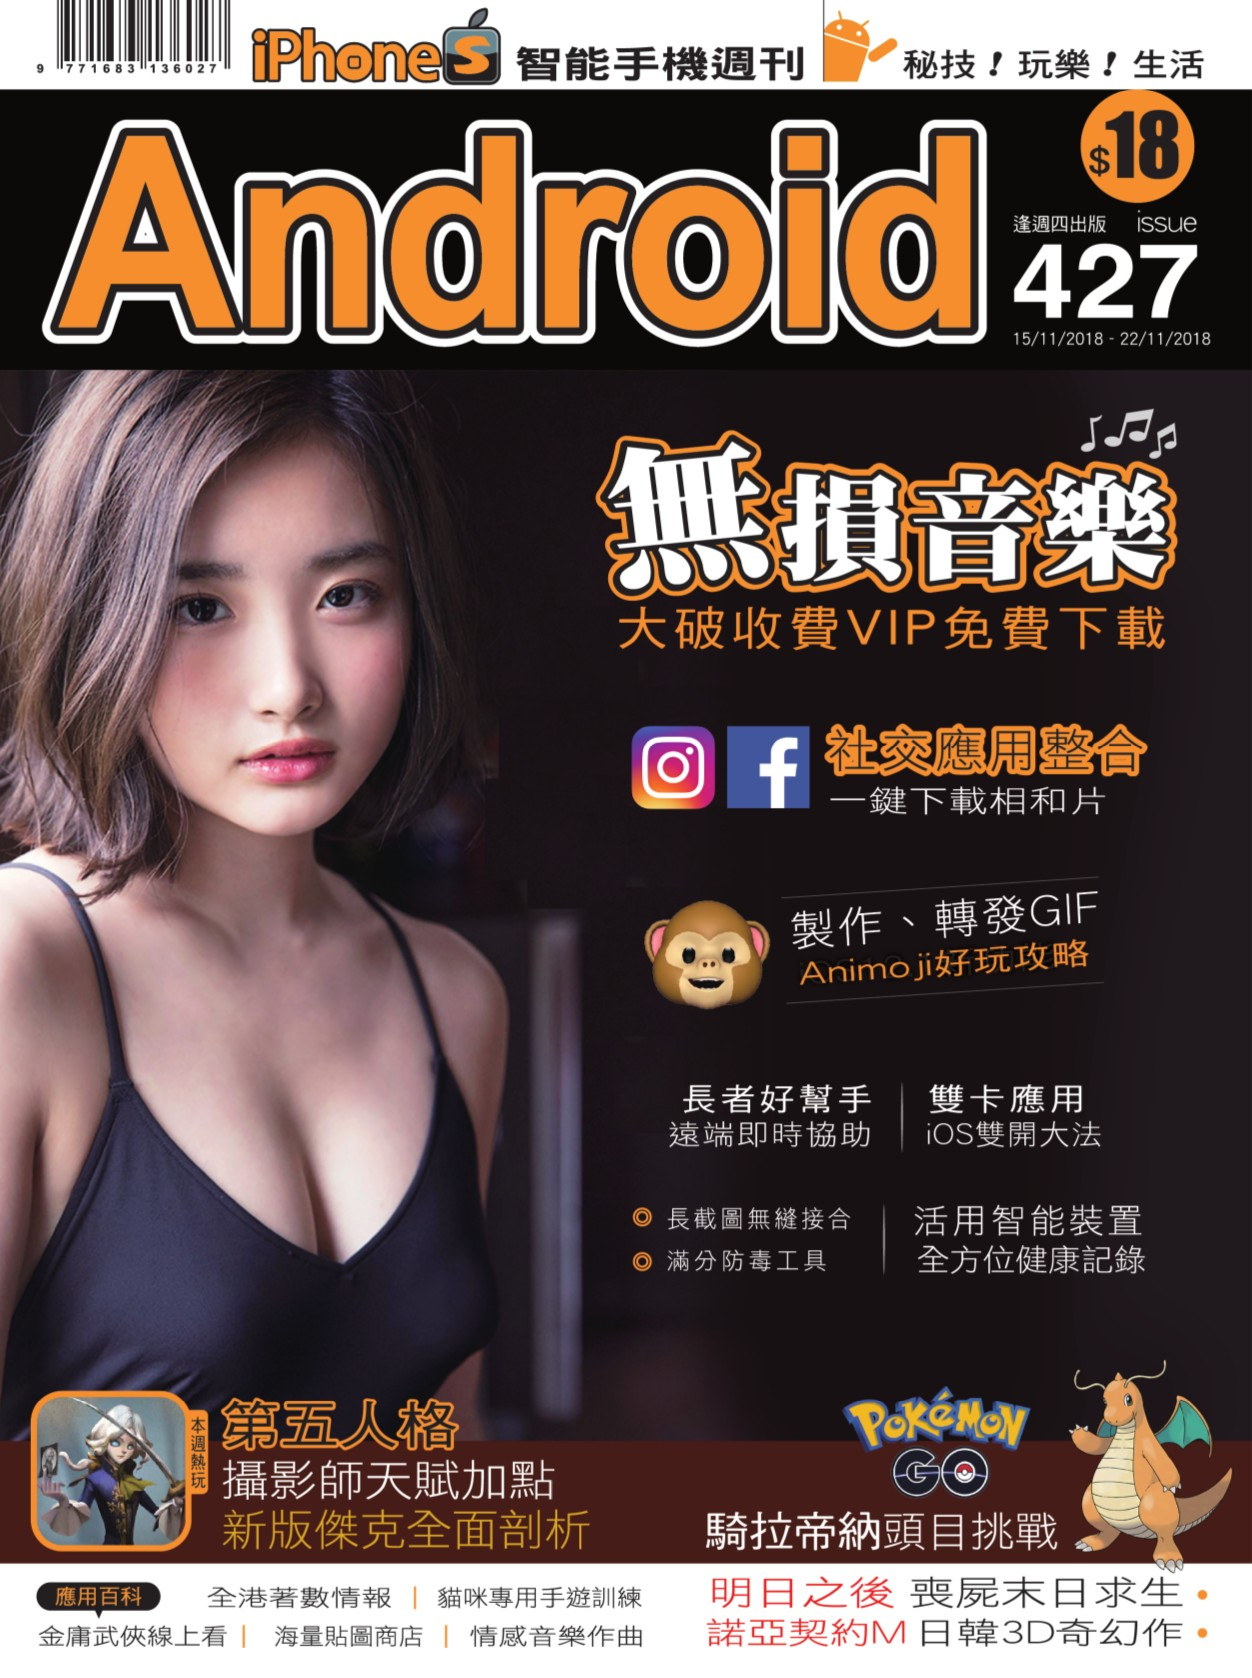 iPhoneS X Android 手机周刊 2018-11-15 第427期